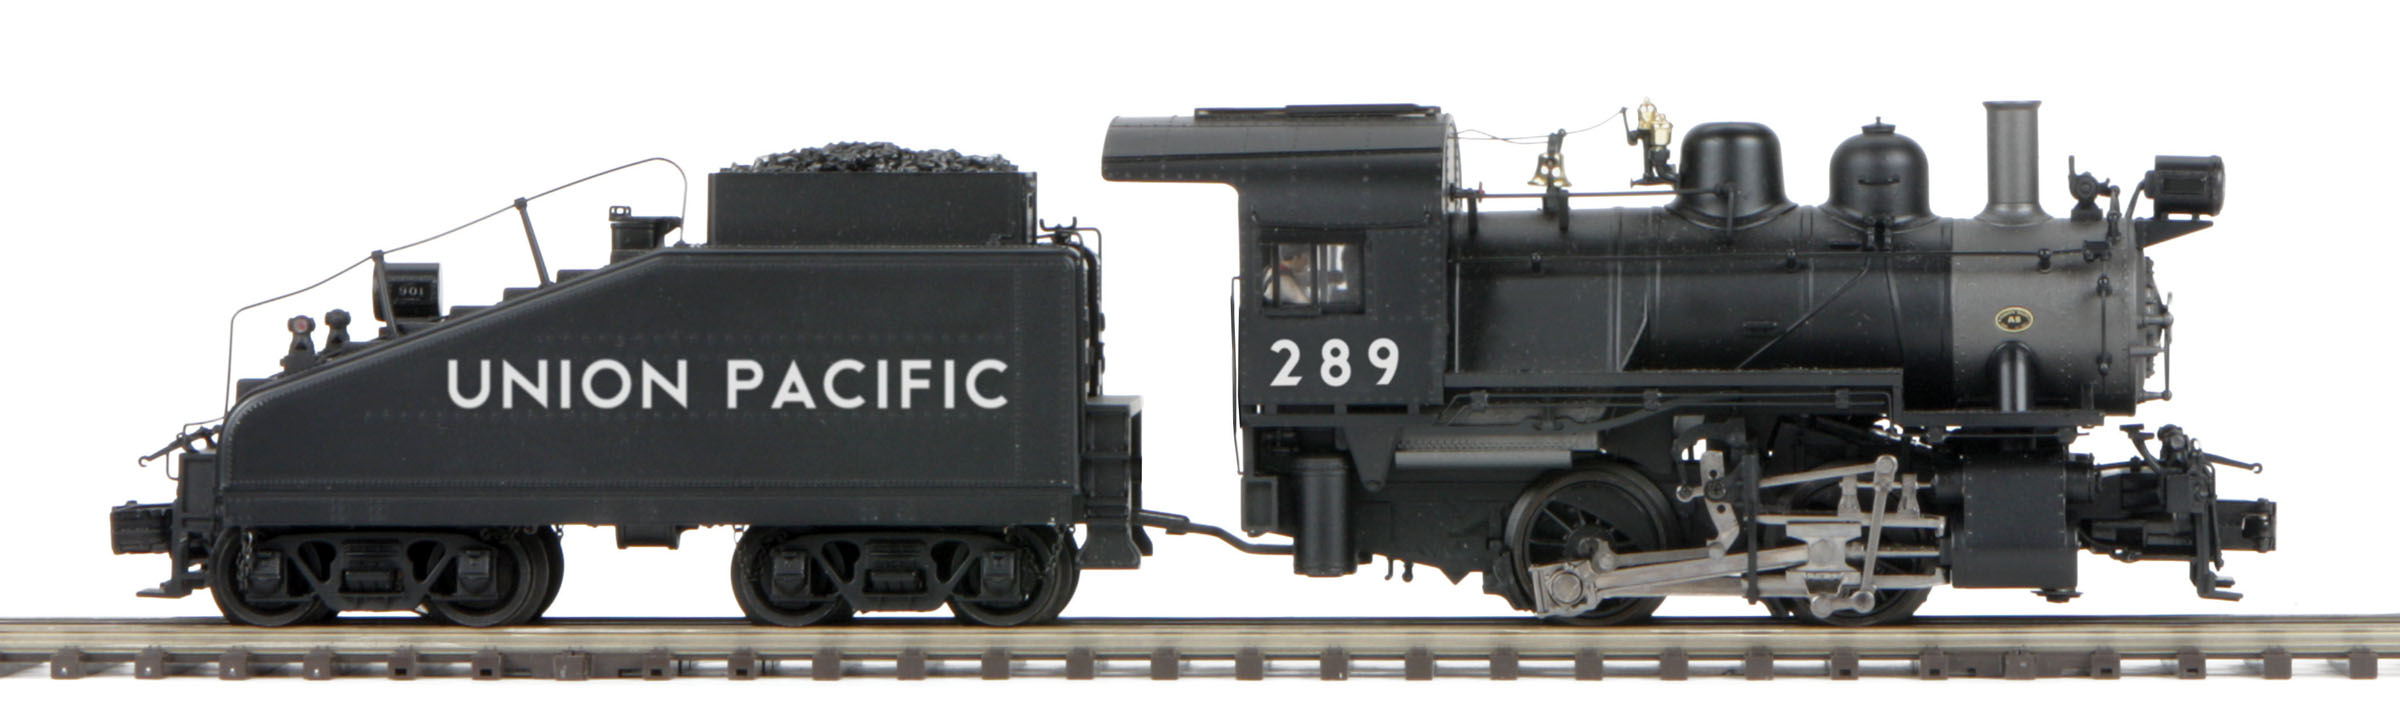 MTH20-3600-1 Union Pacific 0-4-0 Switcher Steam Engine w/ PS 3.0